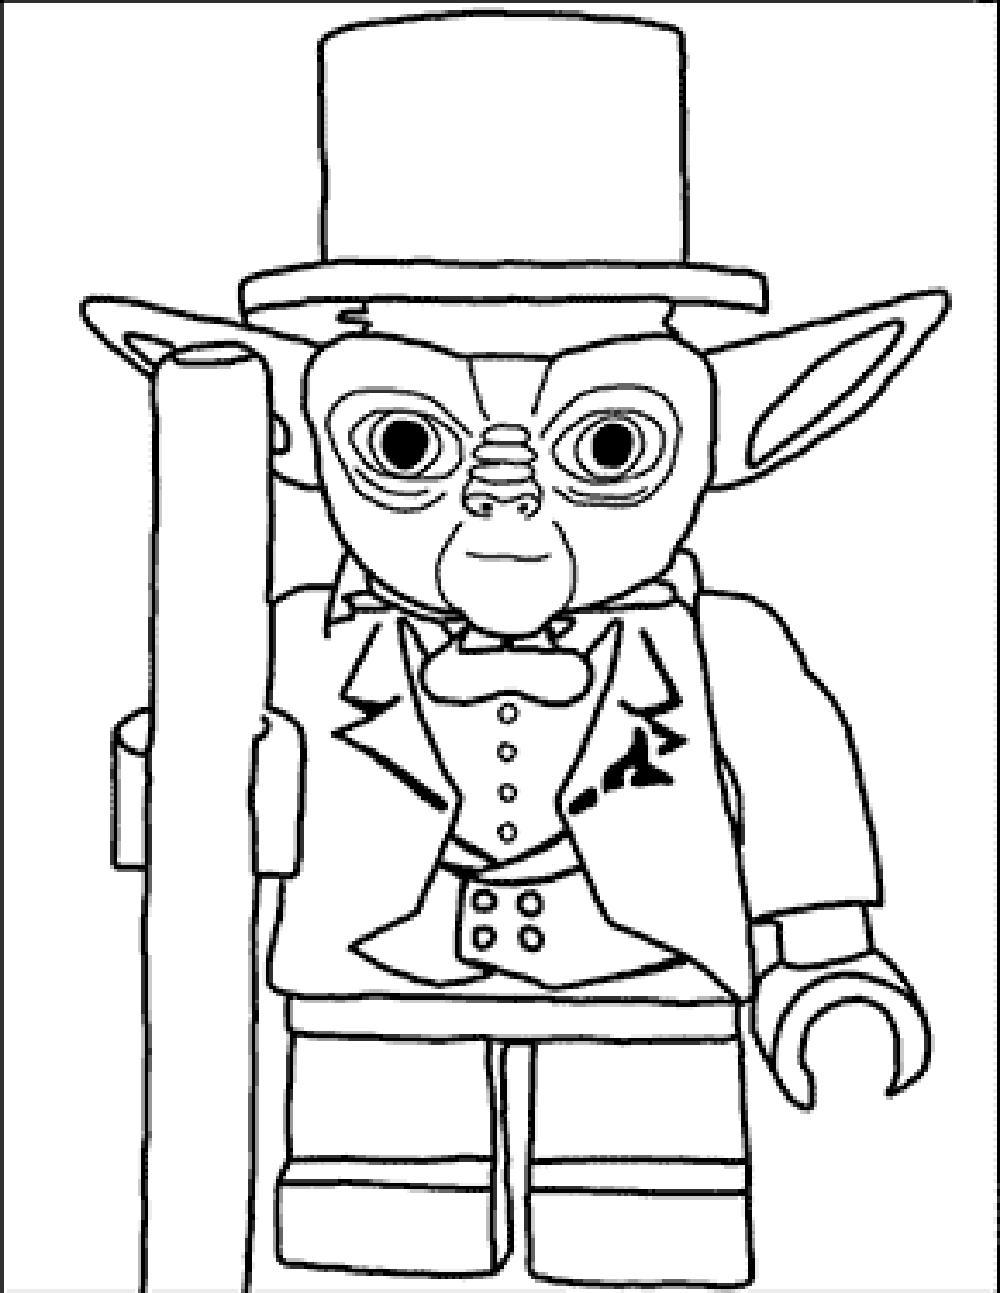 lego star wars pictures to color lego star wars characters coloring page download print wars pictures star color to lego